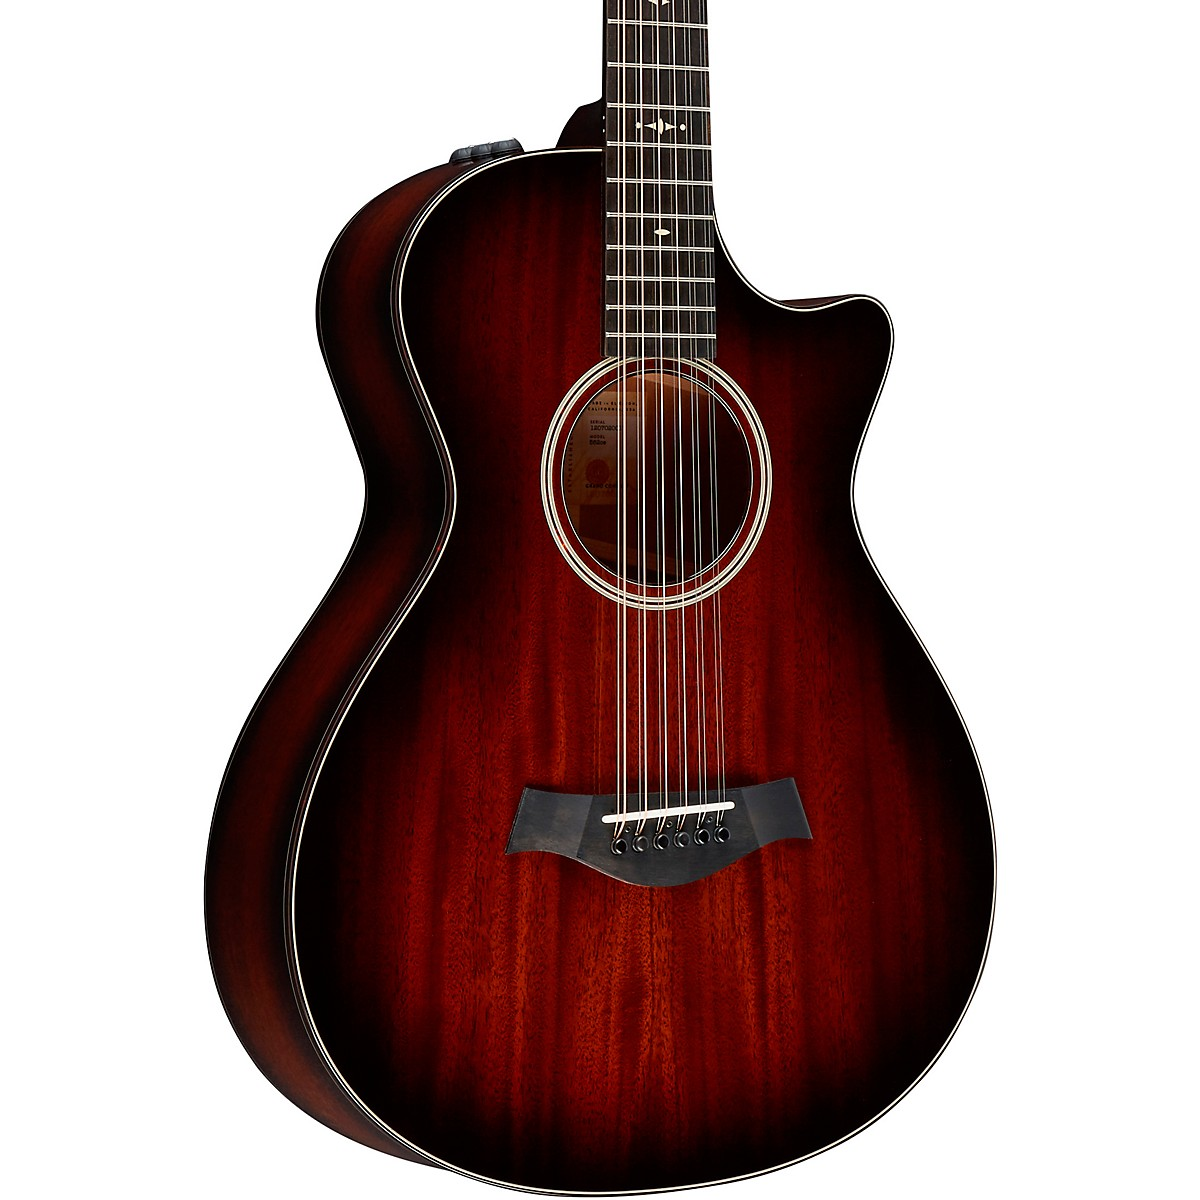 Taylor 562ce V-Class Grand Concert 12 Fret 12-String Acoustic-Electric Guitar